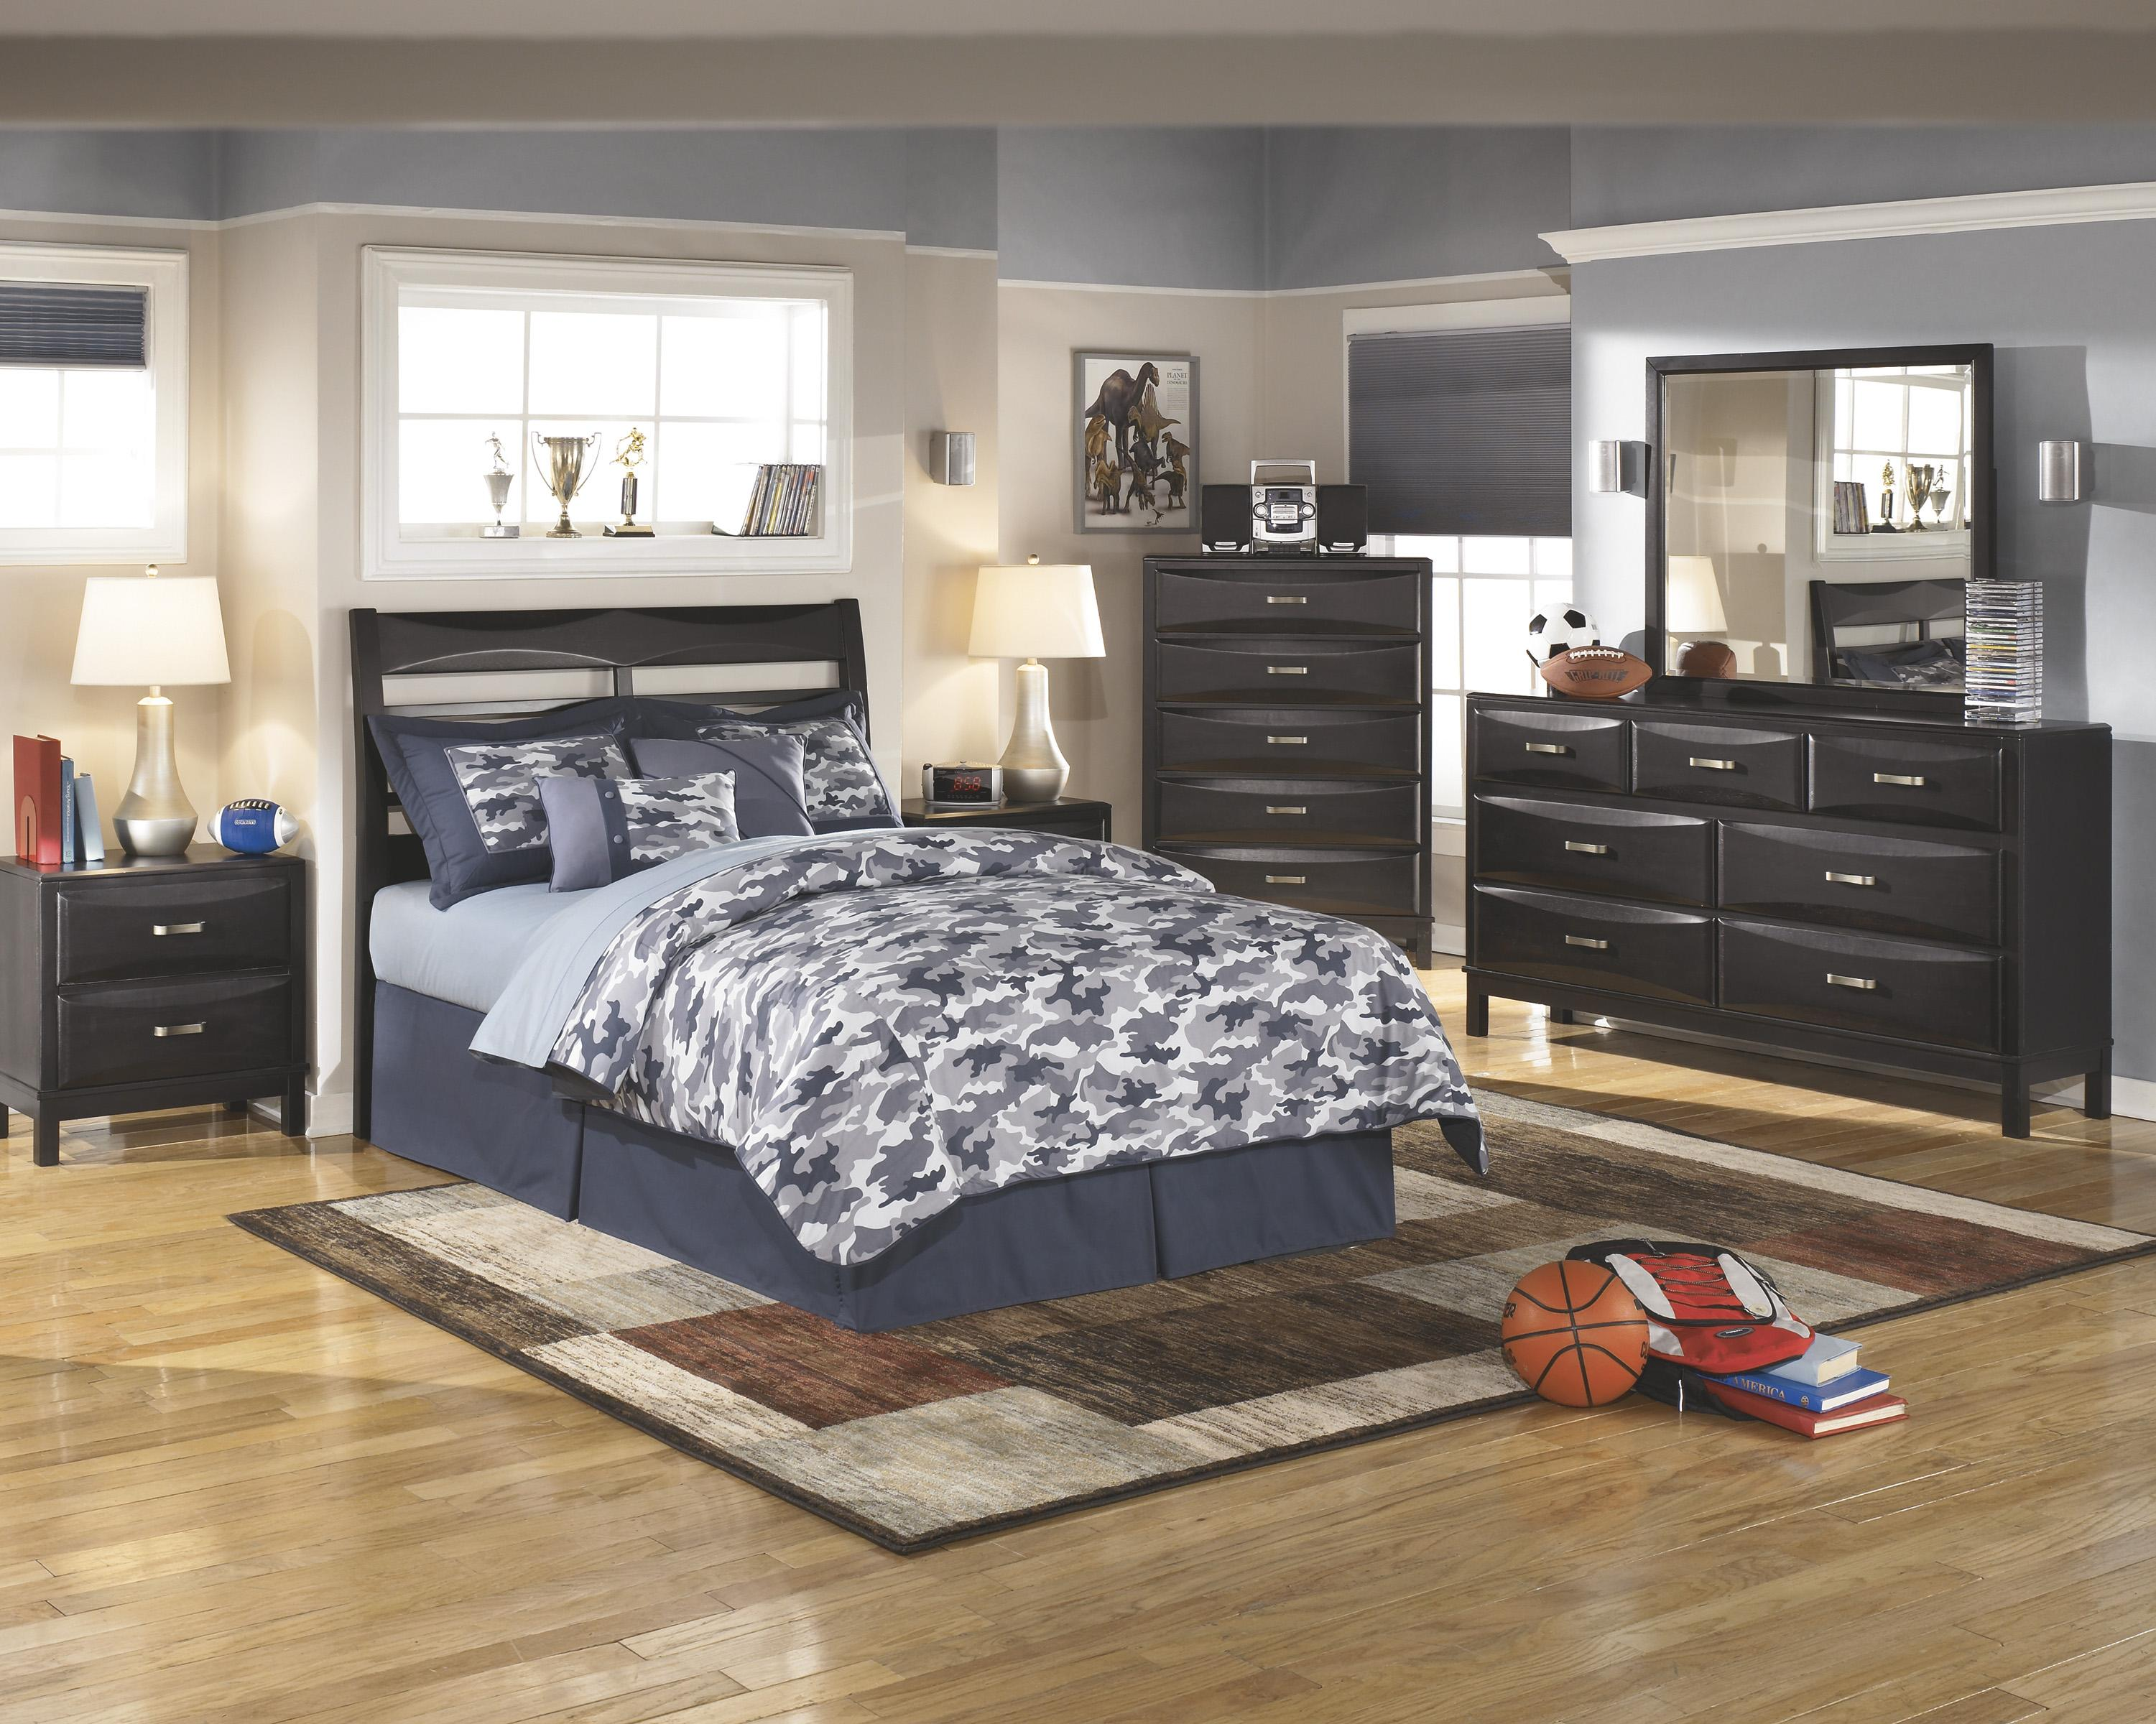 Ashley Furniture Kira Full Bedroom Group - Item Number: B473 F Bedroom Group 2